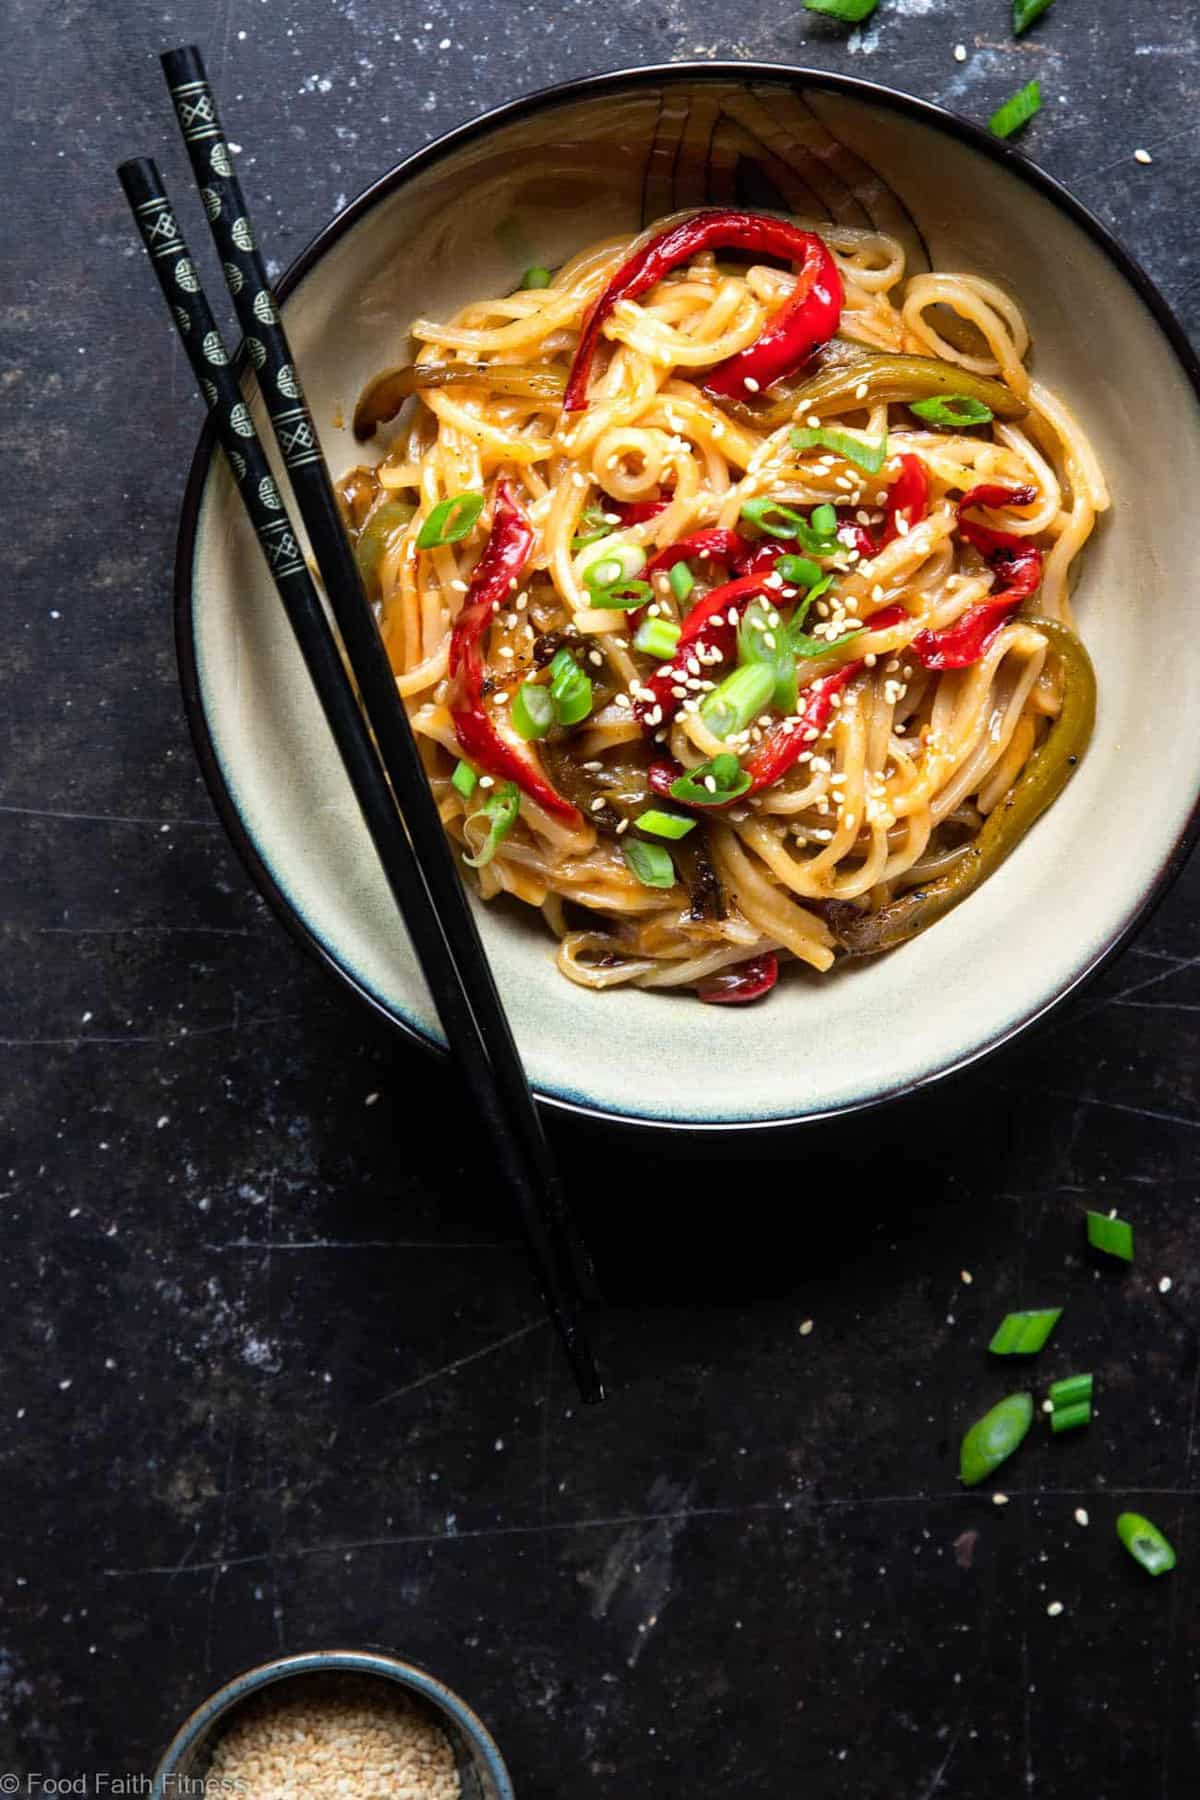 Honey Garlic Instant Pot Noodles - TheseAsian Instant Pot noodles are sticky, sweet and SO addicting! An EASY, gluten free dinner that even picky eaters will request! | #Foodfaithfitness | #glutenfree #InstantPot #healthy #dairyfree #vegetarian